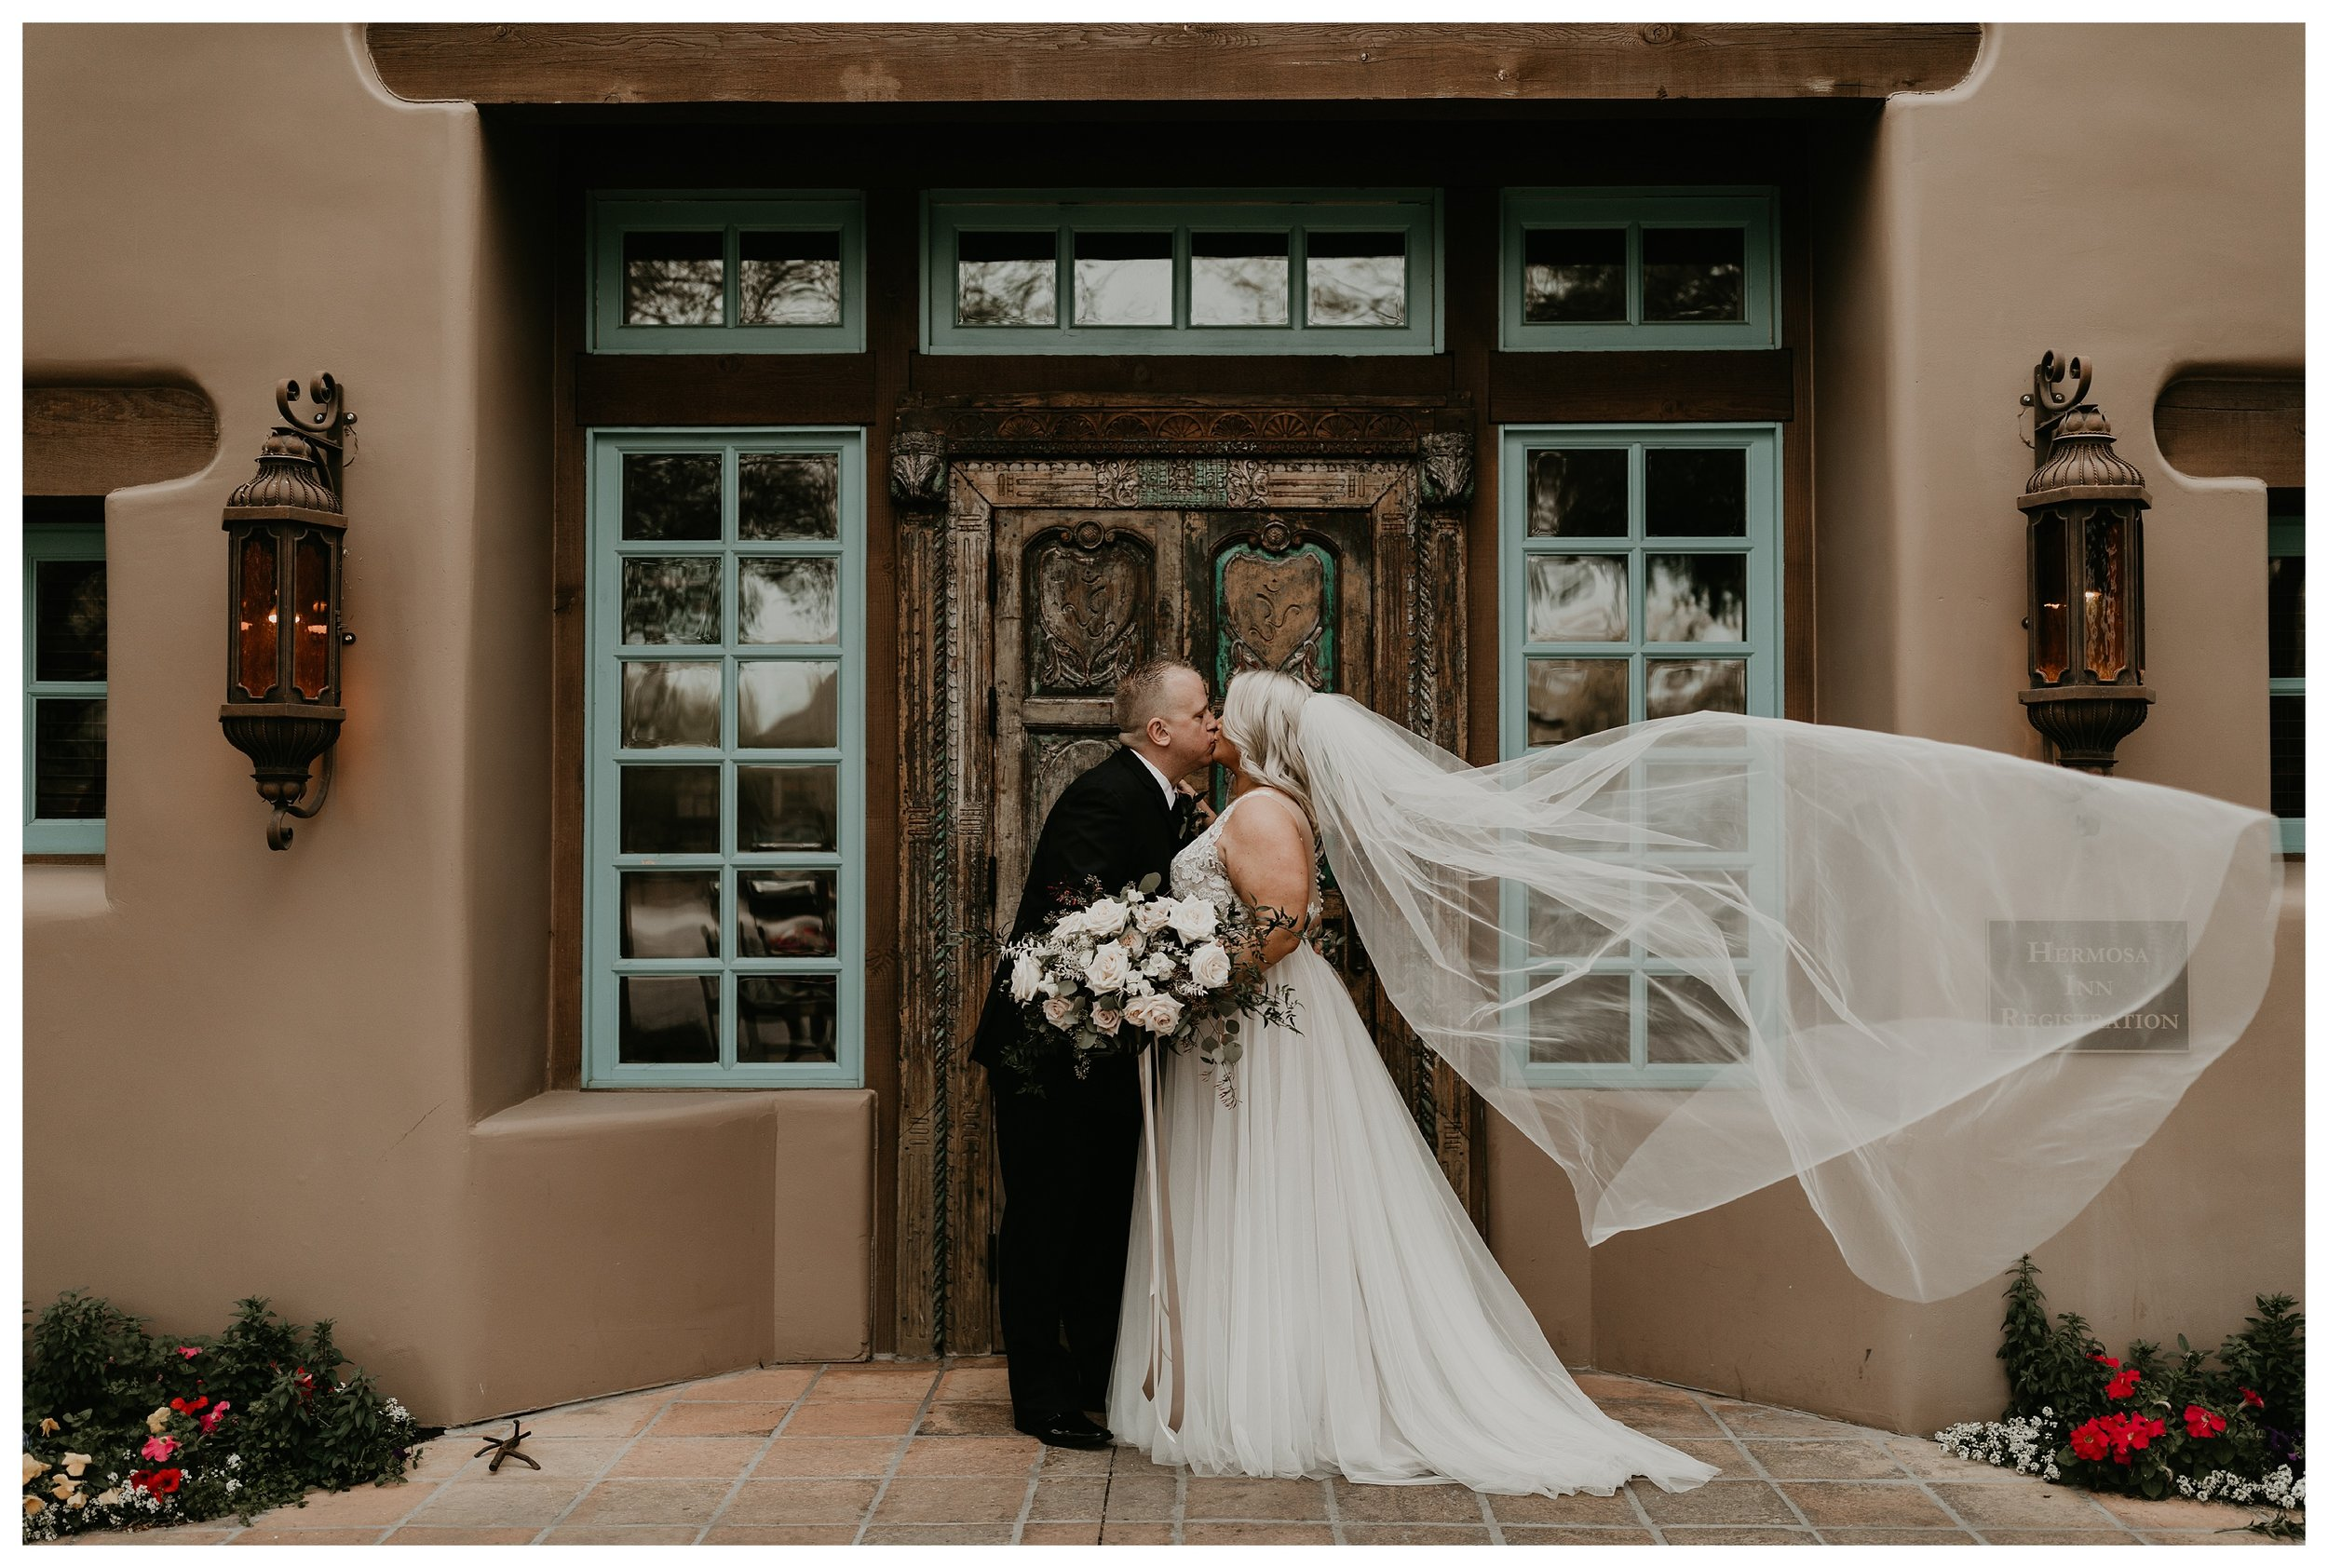 Bride and groom photos at Hermosa Inn in Arizona with long veil and white and greenery bouquet